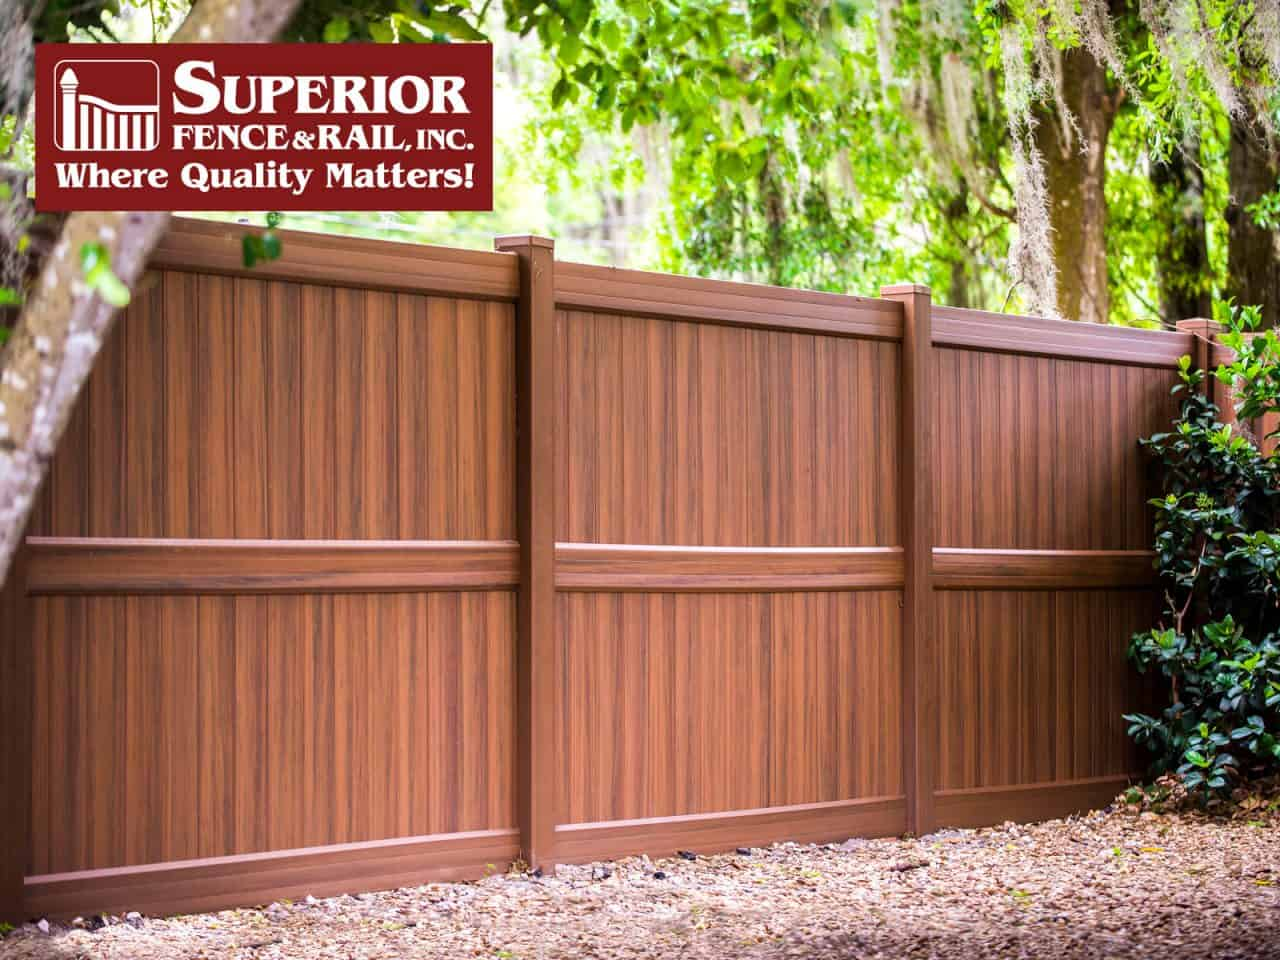 https://www.superiorfenceandrail.com/wp-content/uploads/2020/01/Smyrna-TN-fence-company-1280x960.jpg